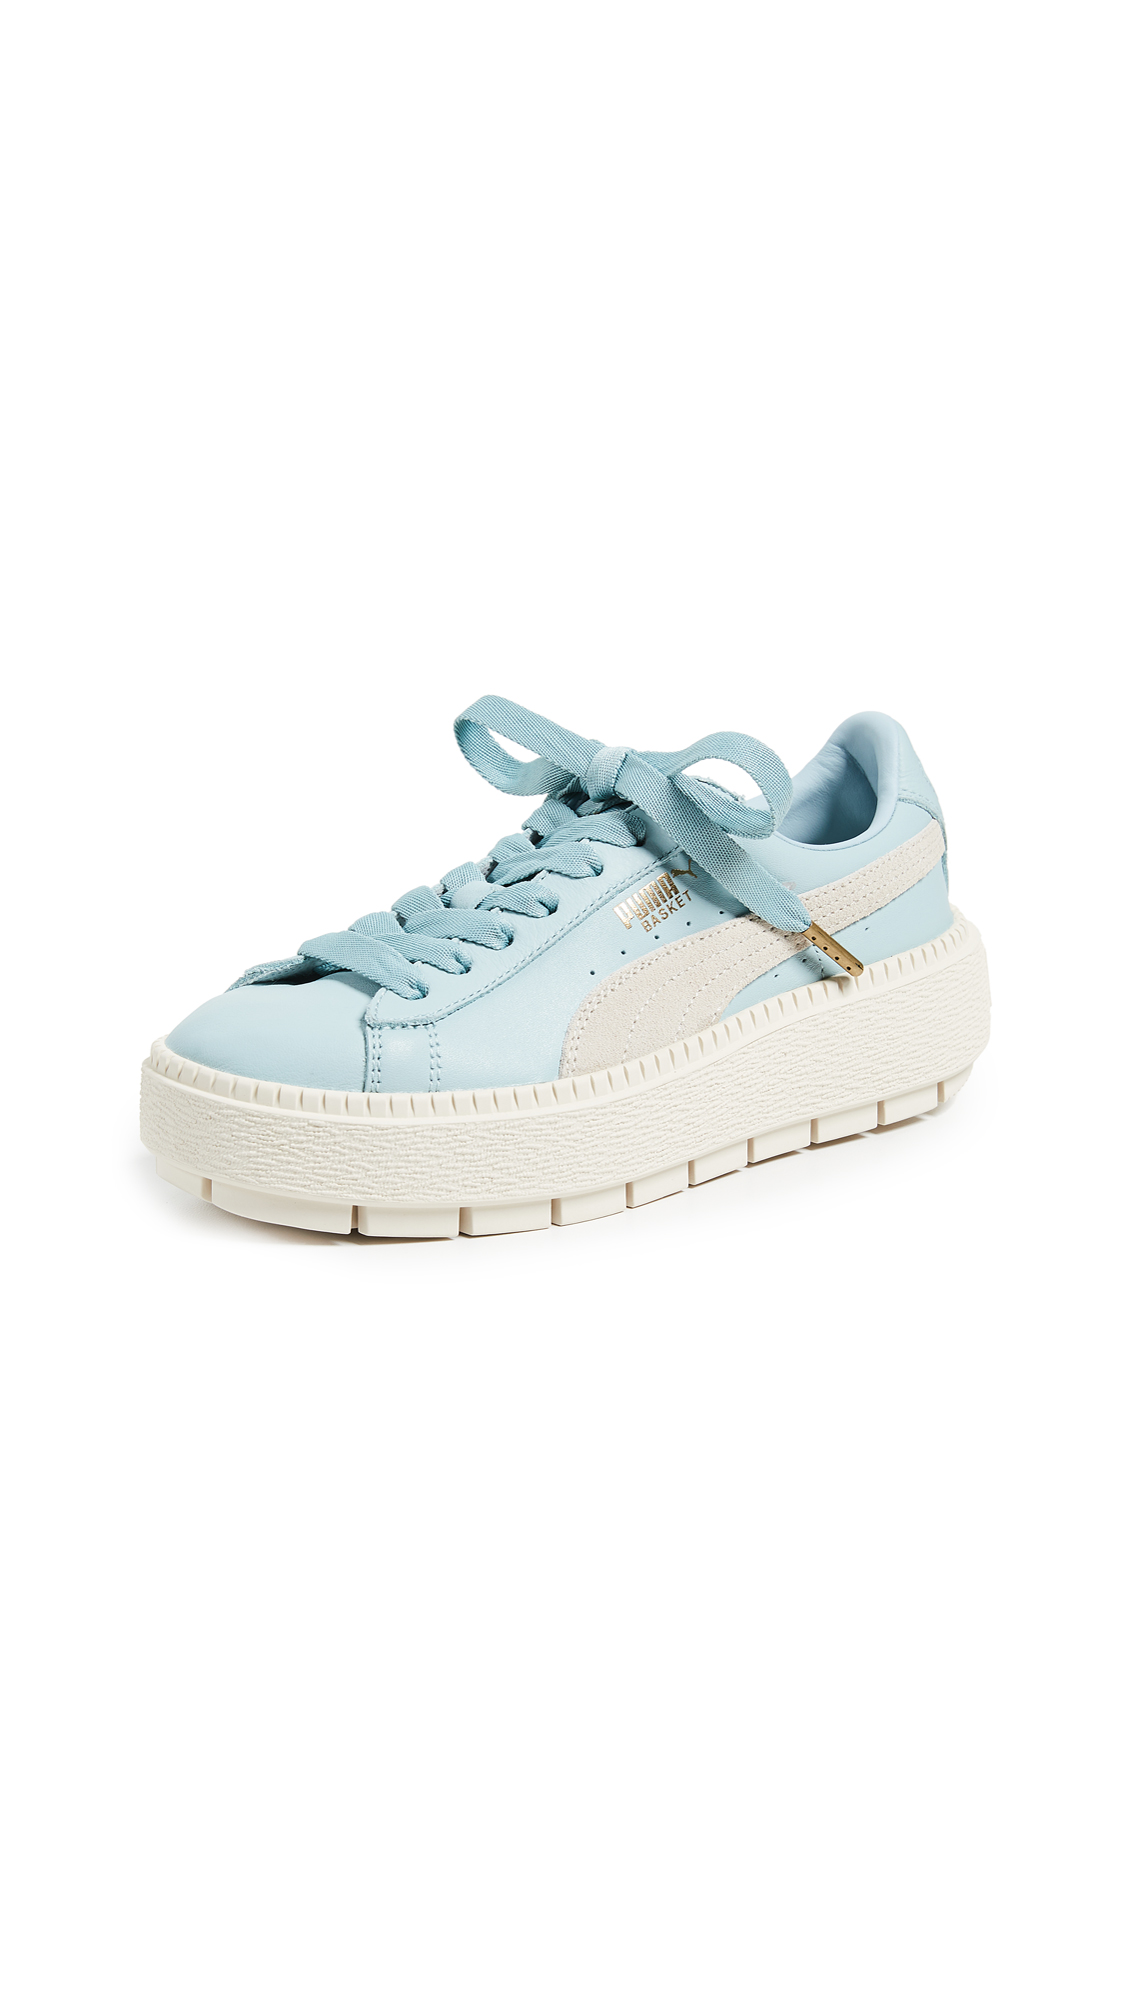 PUMA Basket Platform Trace Block Sneakers - Sterling Blue/Vanilla Ice